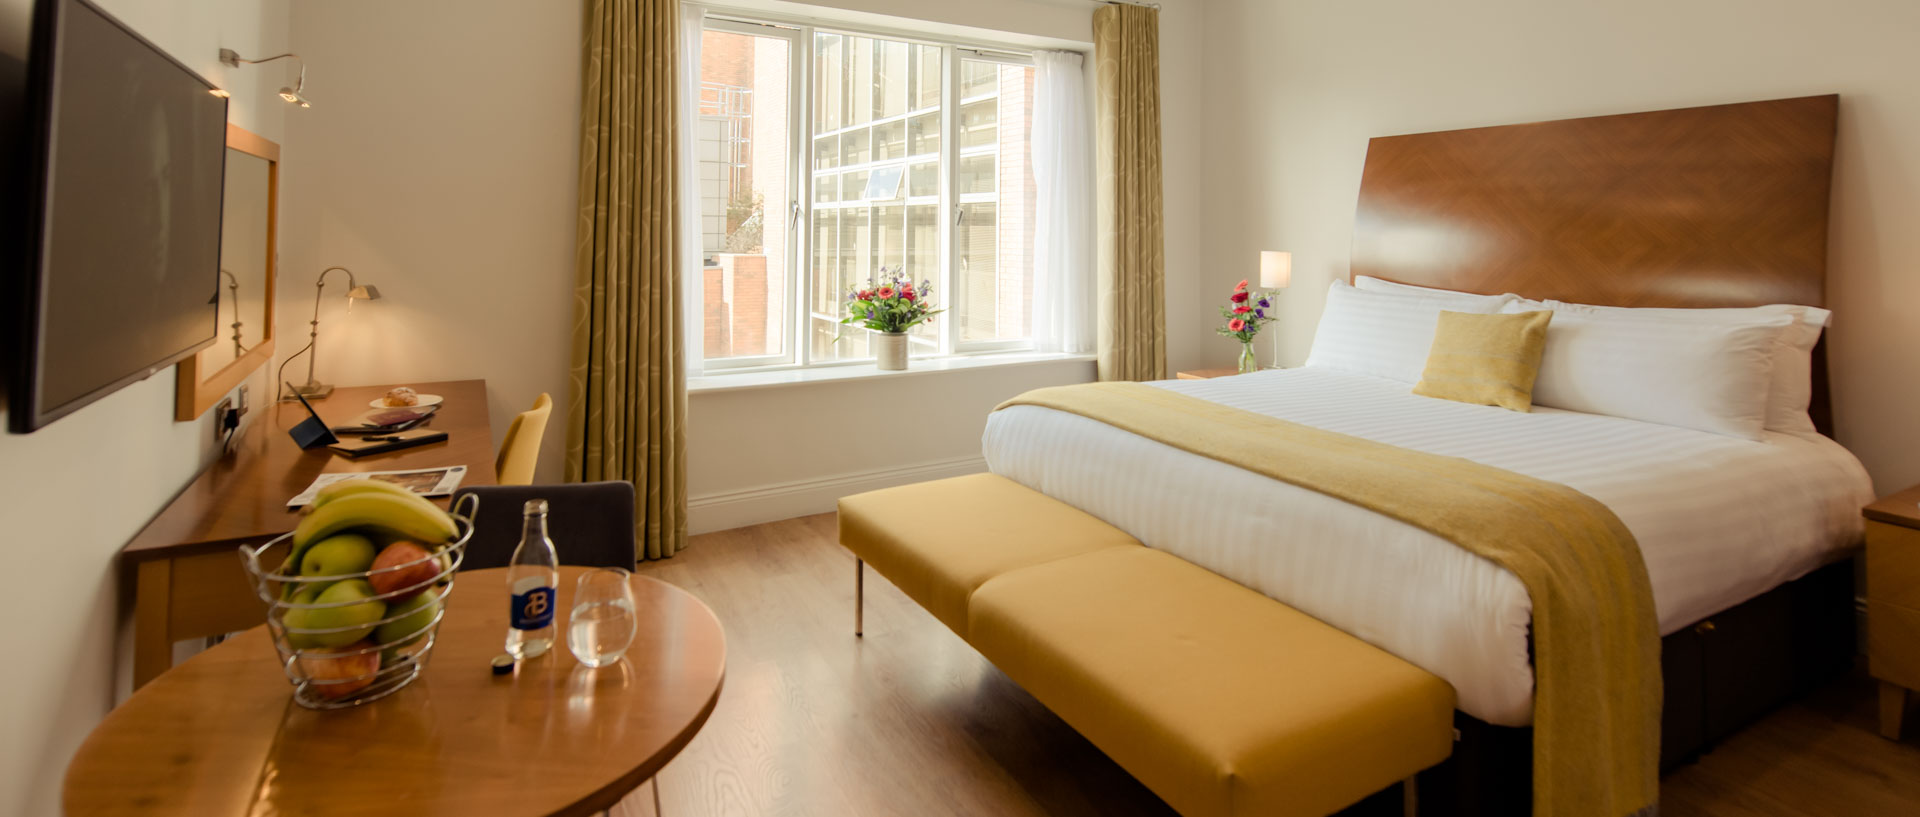 PREMIER SUITES PLUS Leeson Street double bedroom